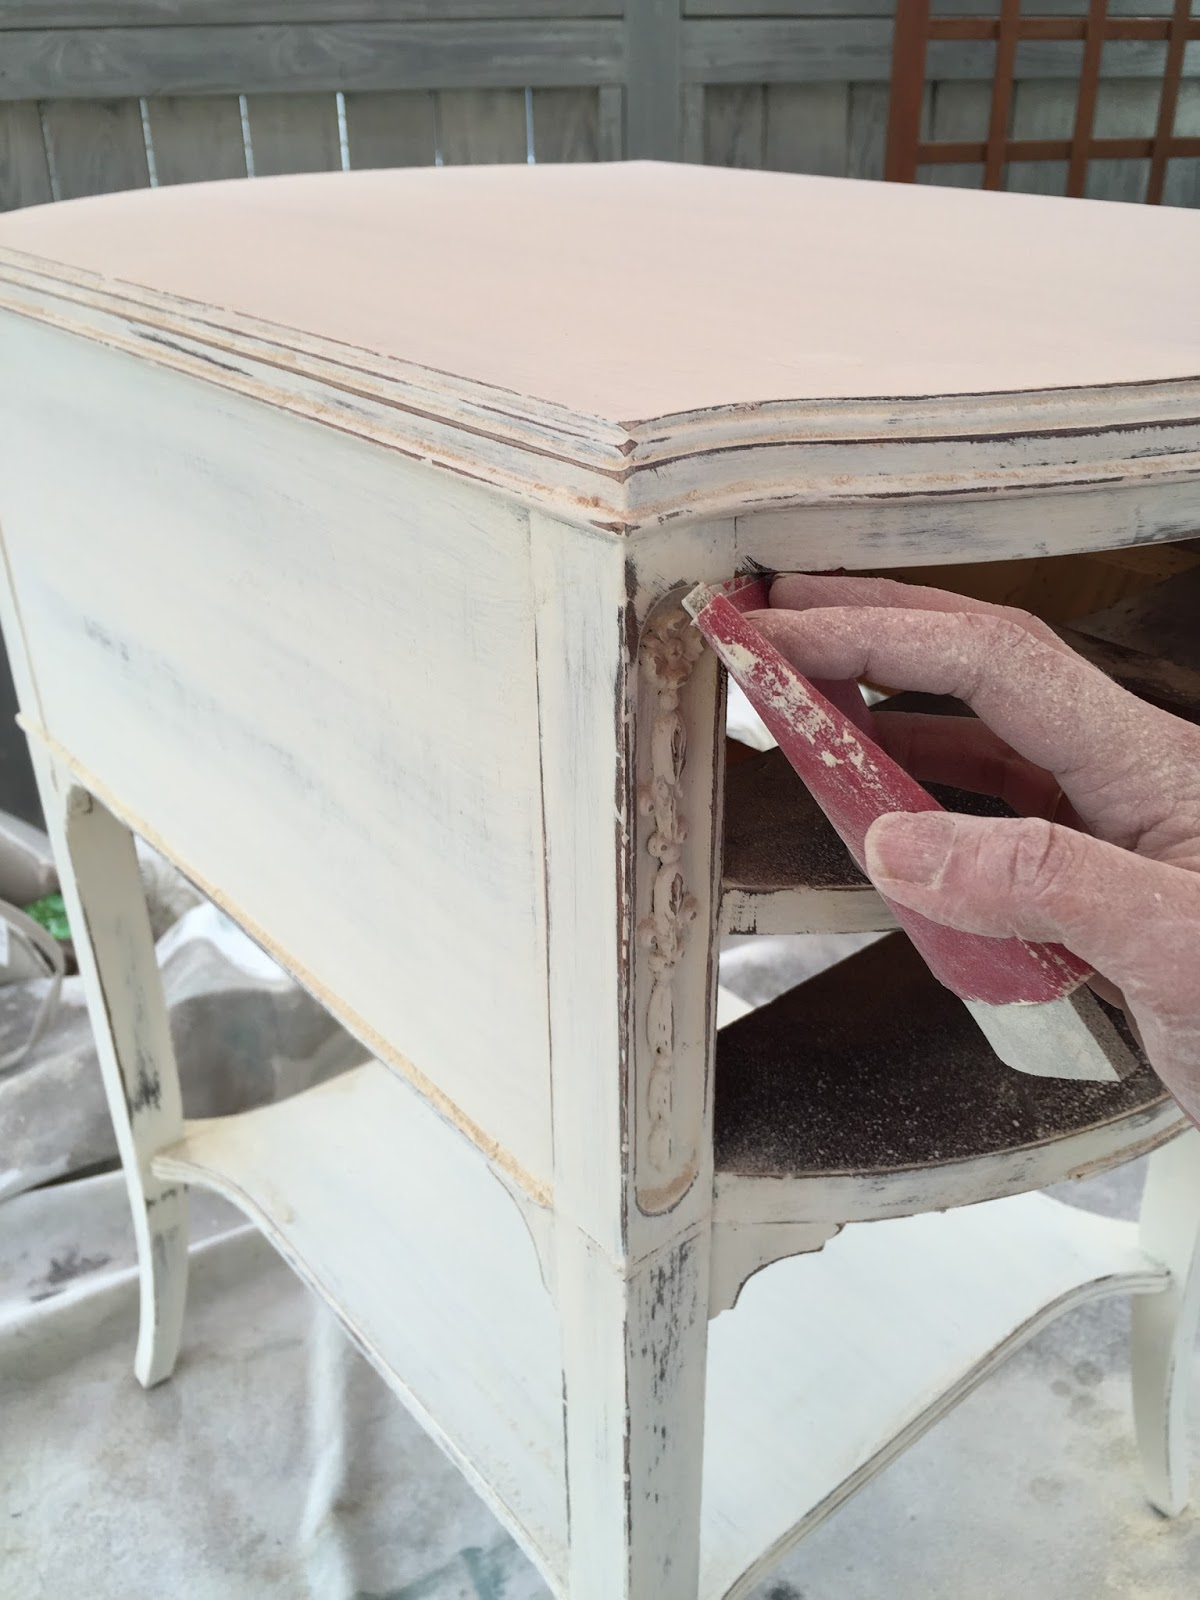 Use sandpaper to create a distressed finish